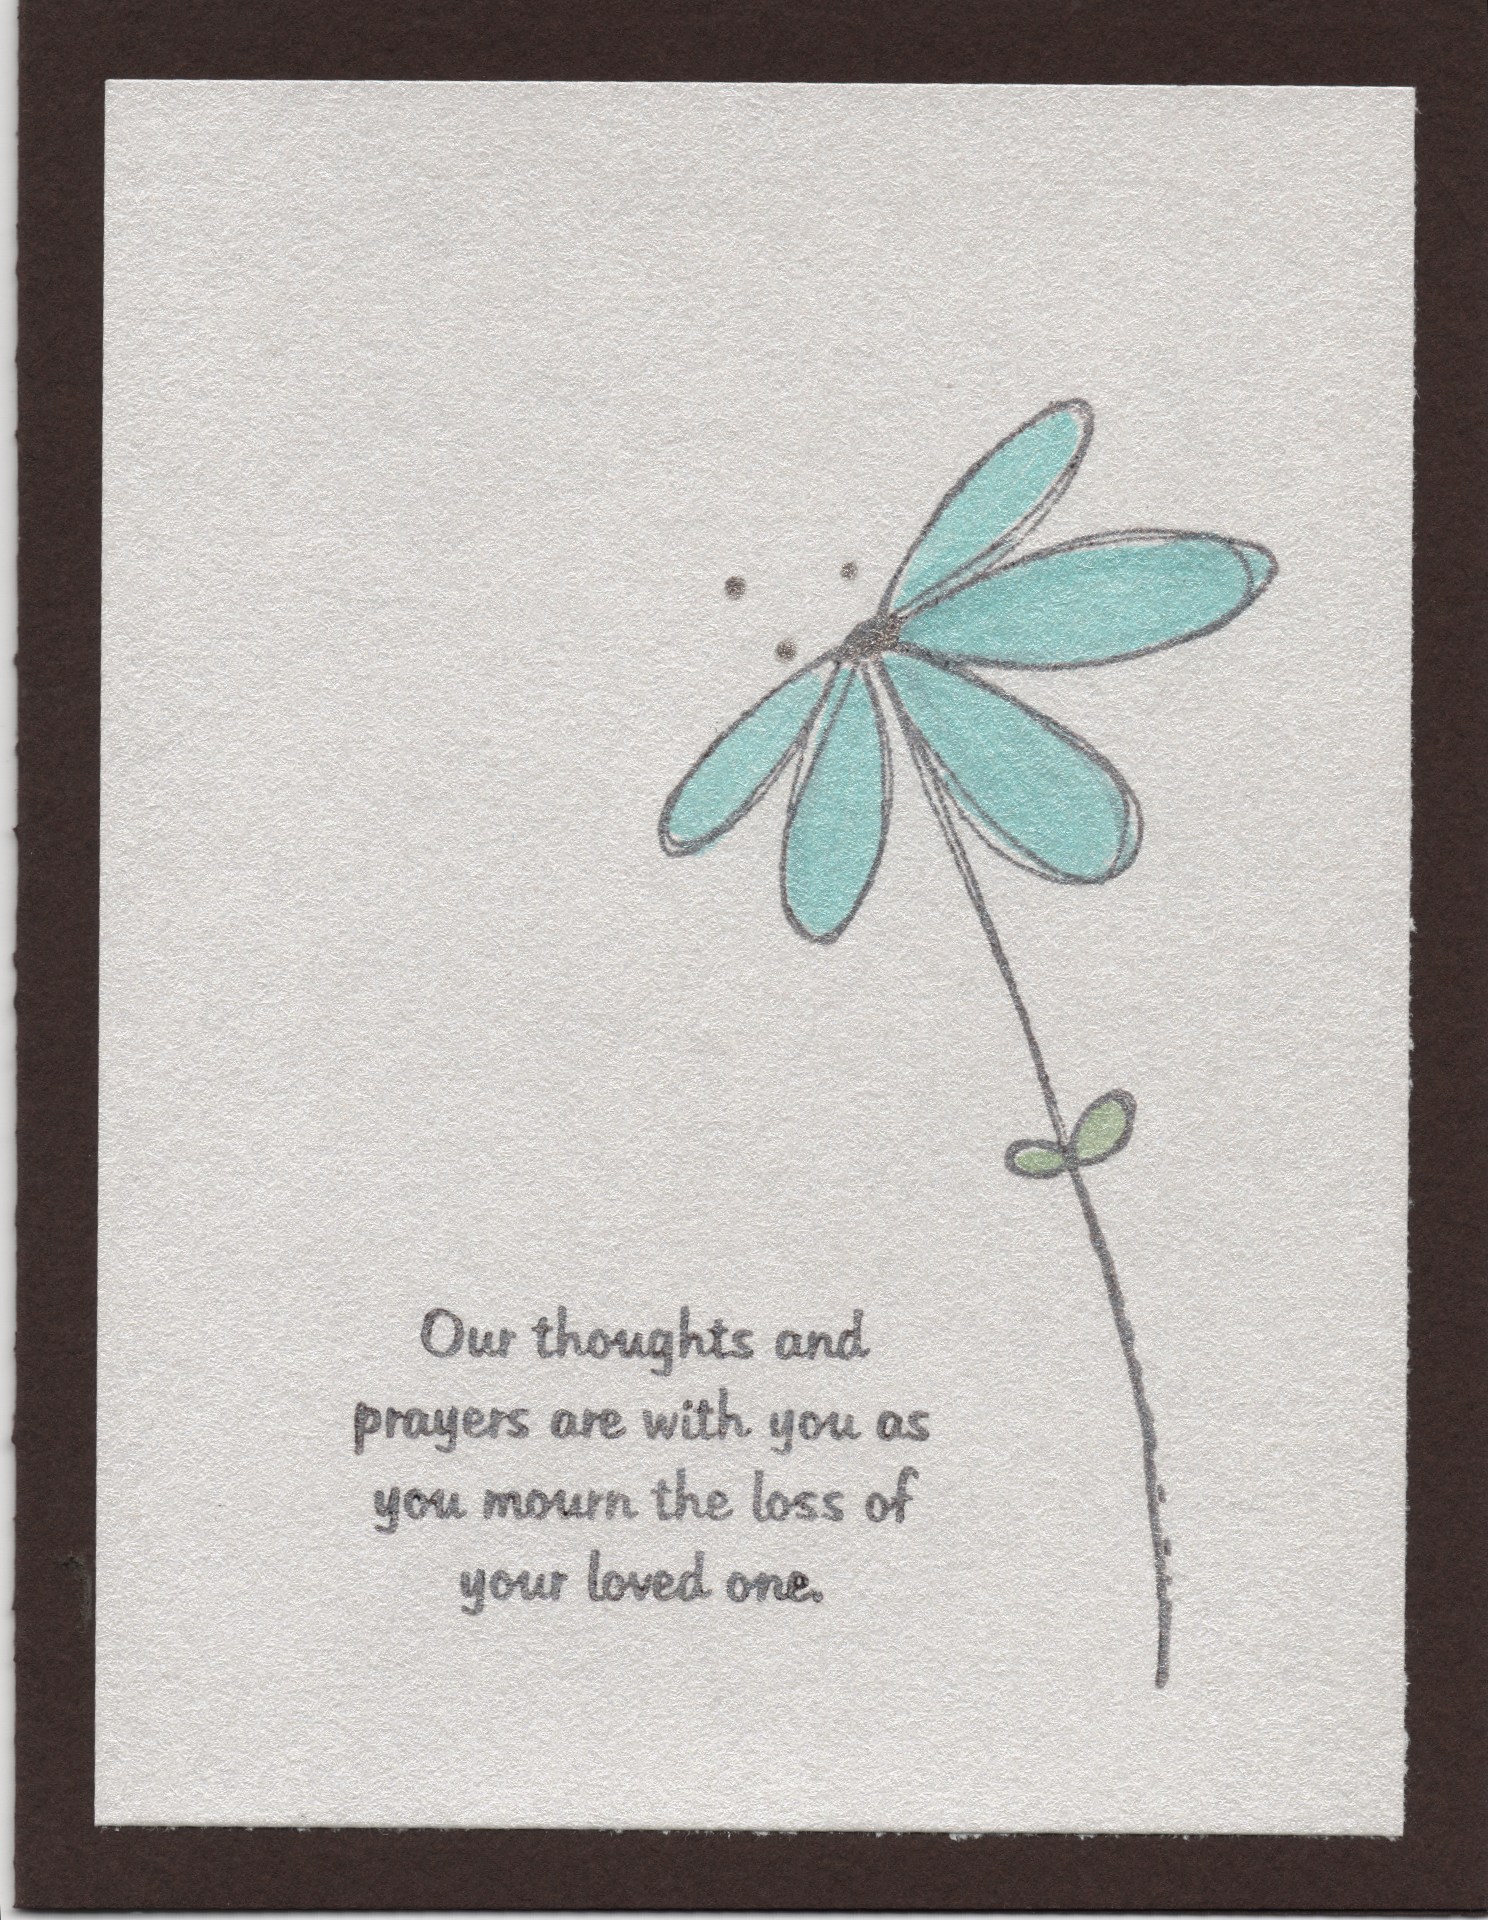 Quotes For Loss Of A Loved One Loved One Endless Creations Rubber Stamps